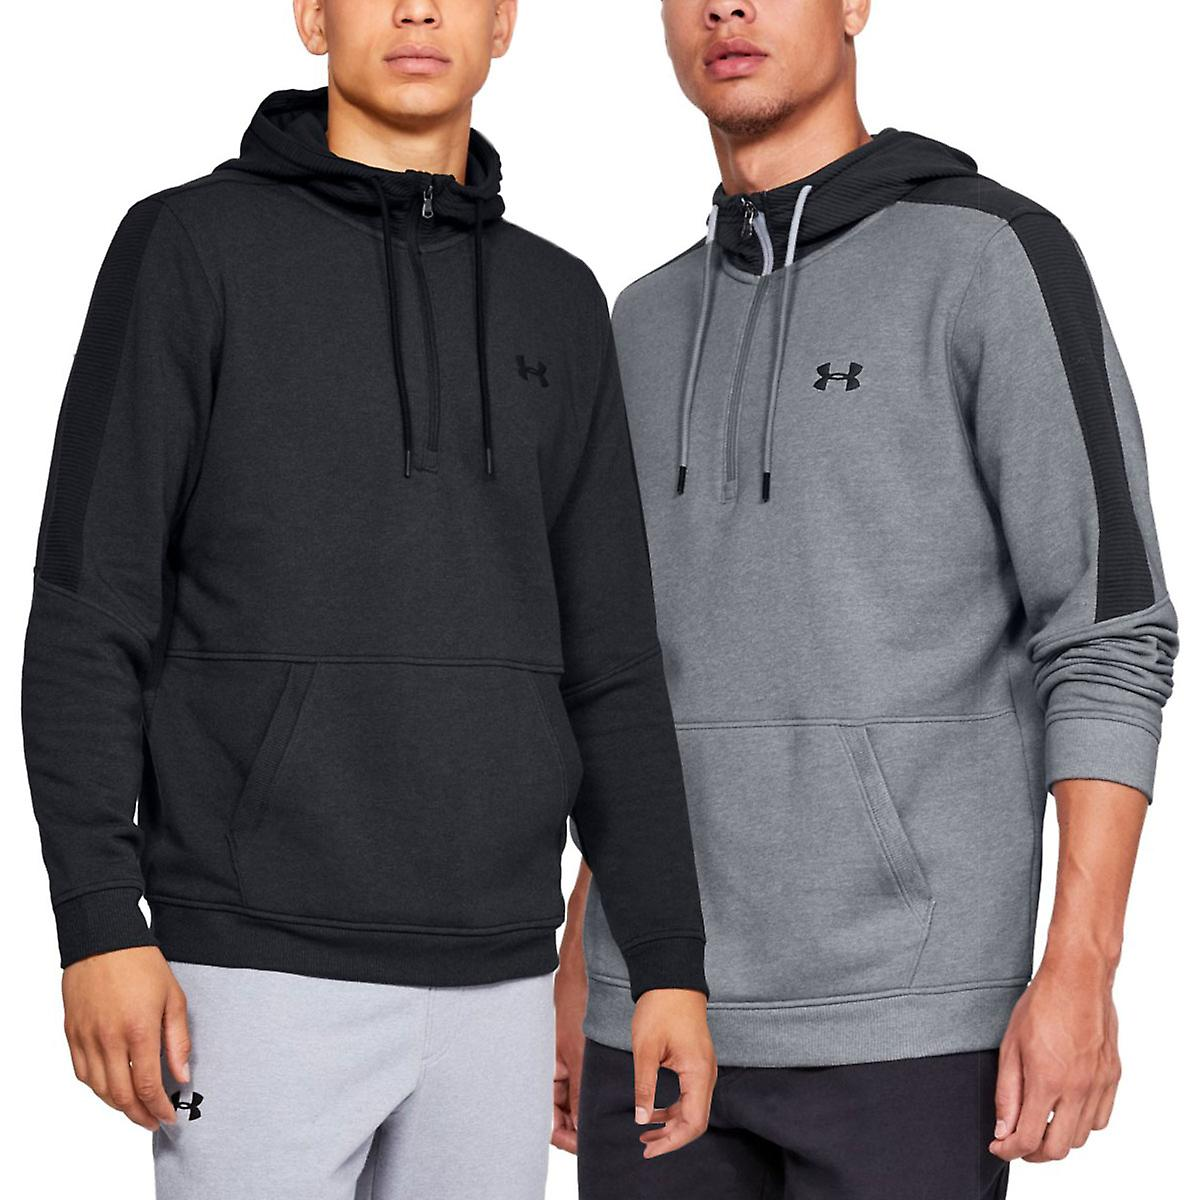 Hoodies & Sweatshirts Under Armour Mens Micro Thread Fleece